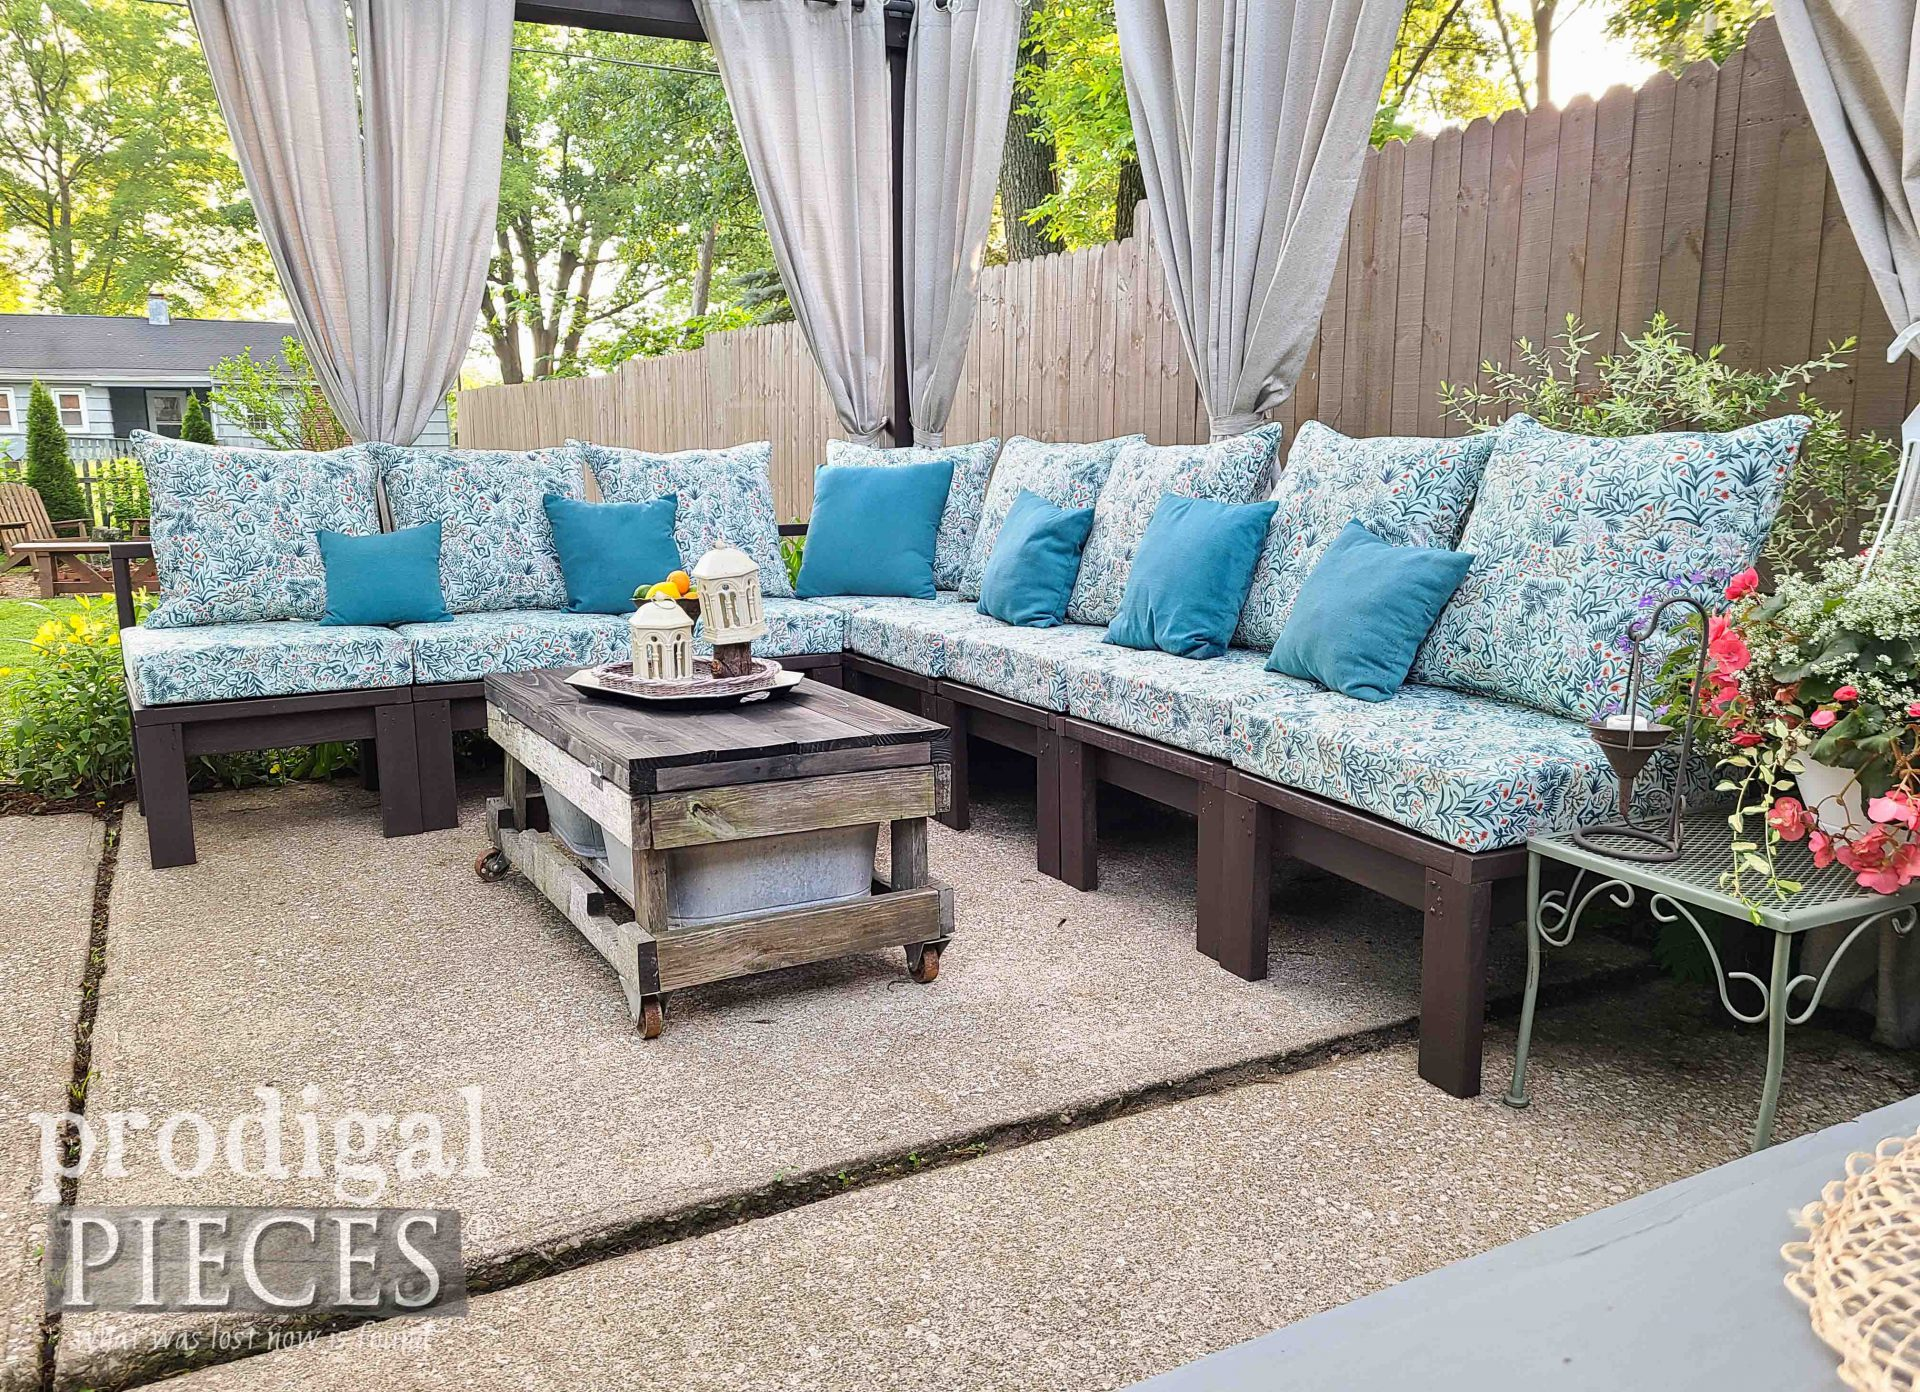 Build a DIY Patio Sectional with Cushions | Prodigal Pieces | prodigalpieces.com #prodigalpieces #outdoor #patio #home #entertaining